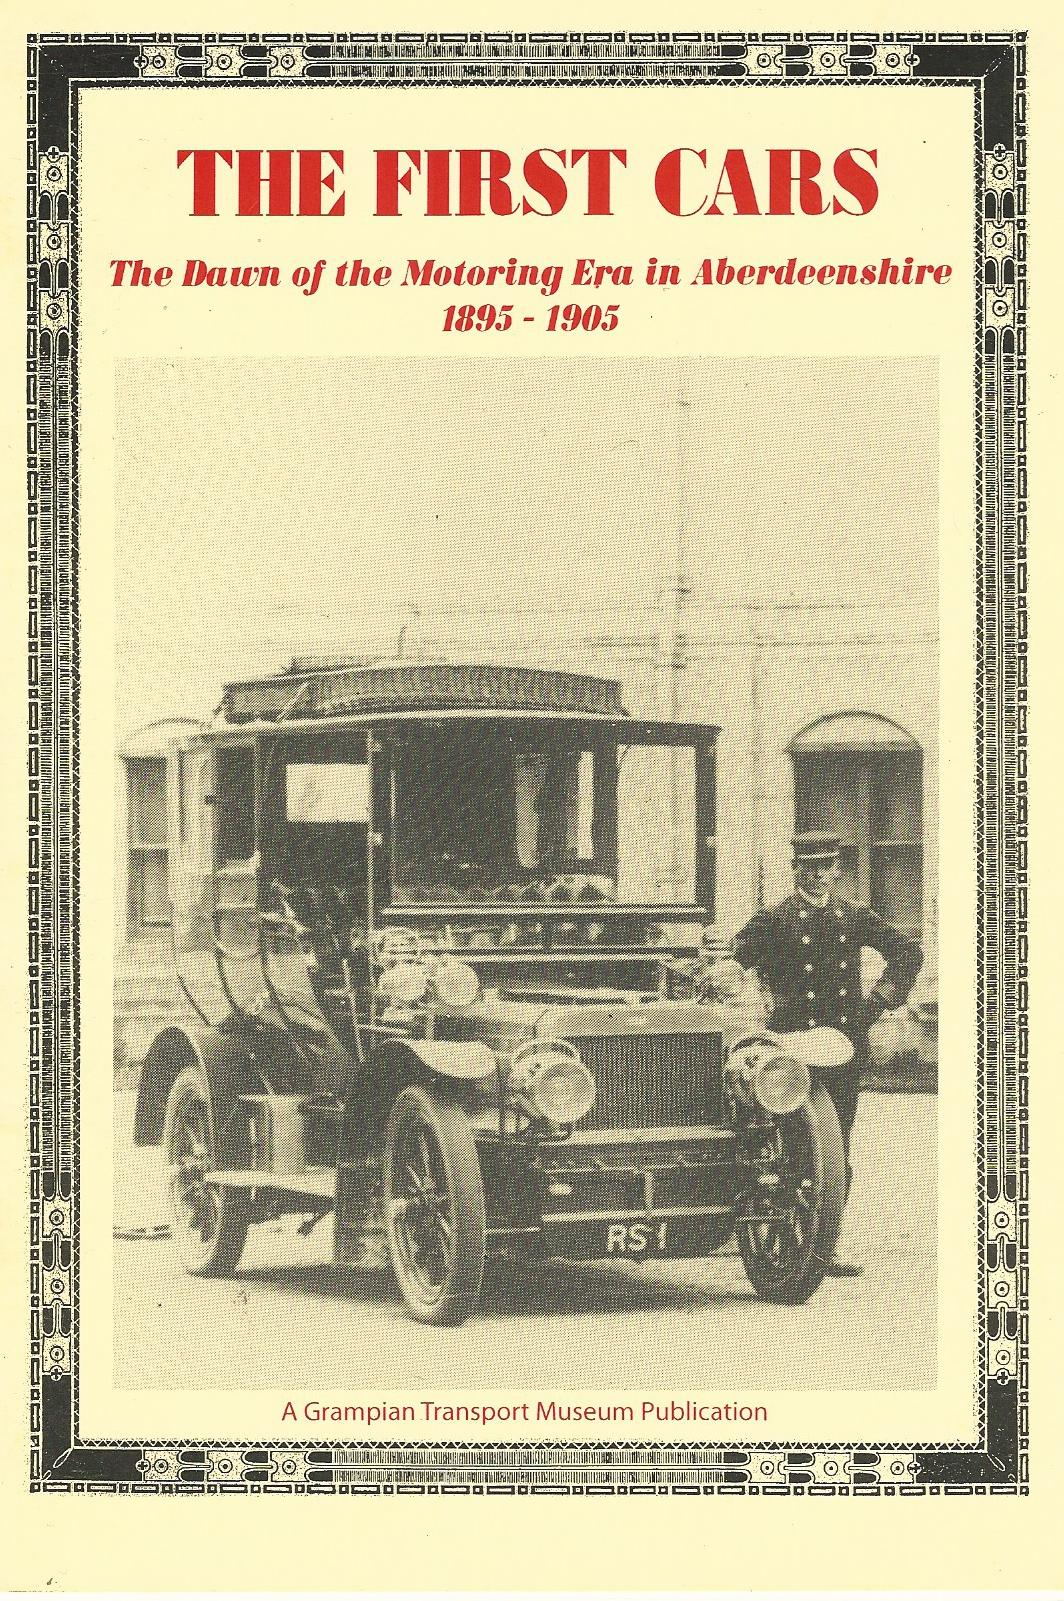 Image for The First Cars: The Dawn of the Motoring Era in Aberdeenshire 1895 - 1905.